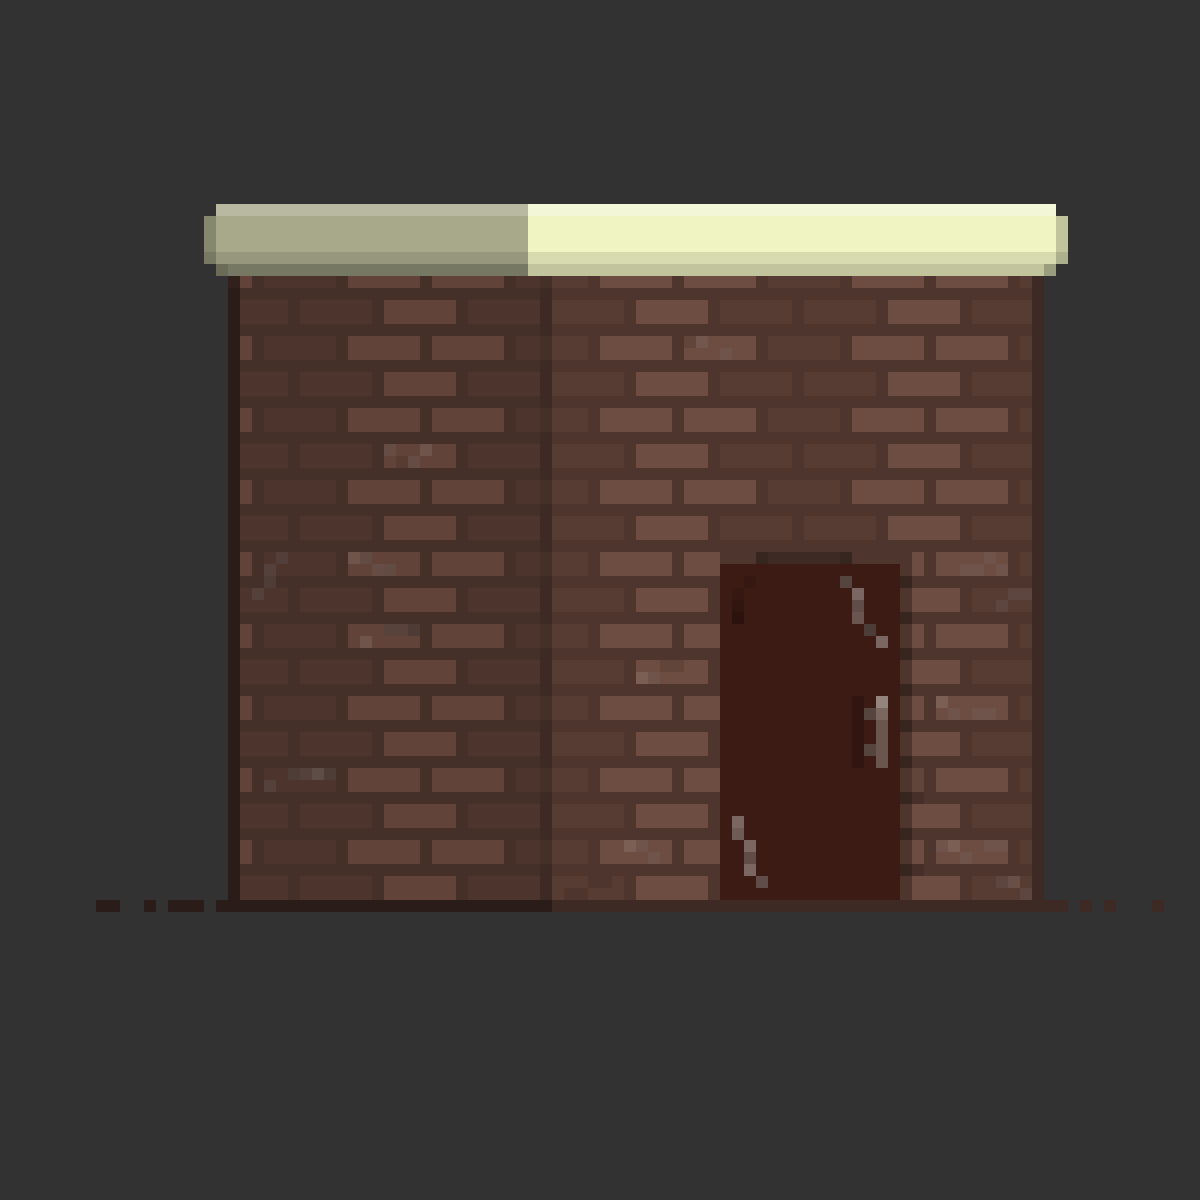 That Tiny Brick Building from Every Park Ever. by TheNineBall